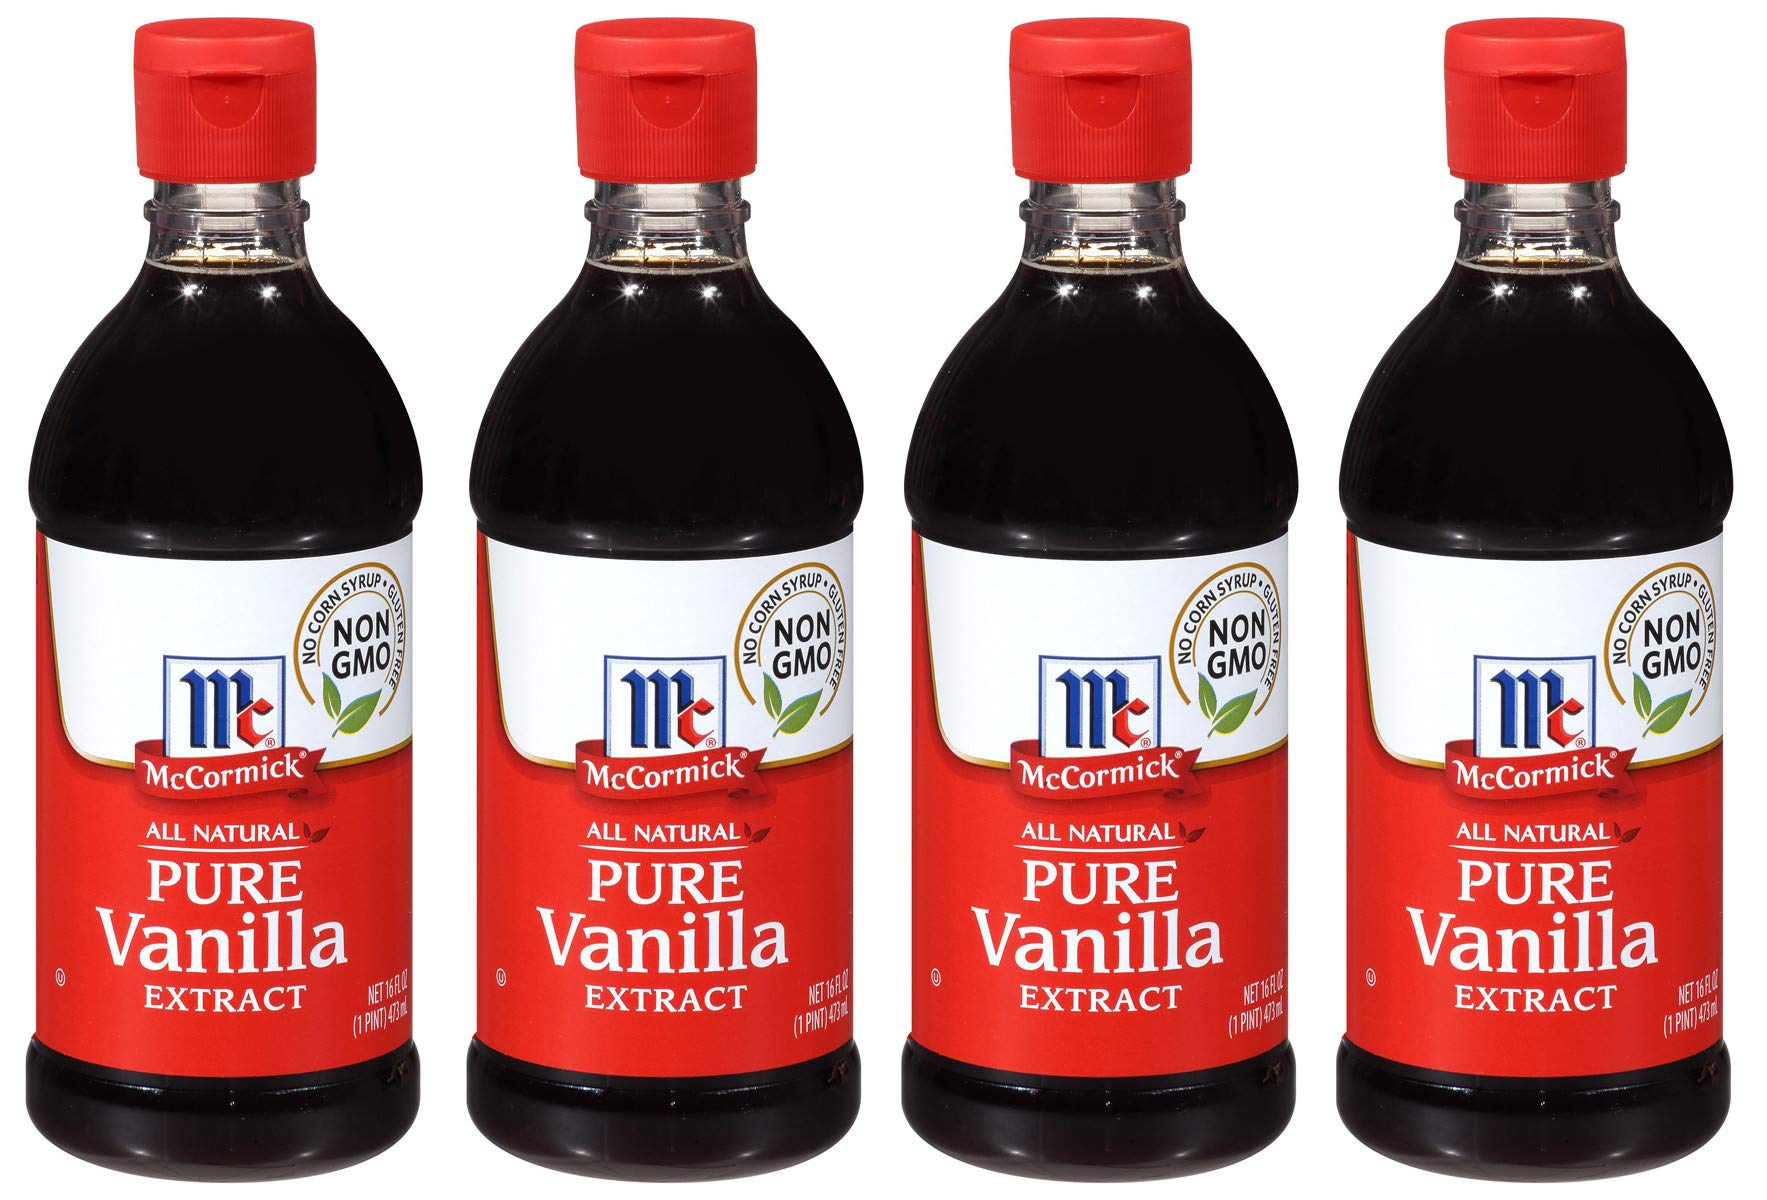 McCormick MJCL All Natural Pure Vanilla Extract, Gluten-Free Vanilla, 4 Pack of 16 Oz by McCormick (Image #1)